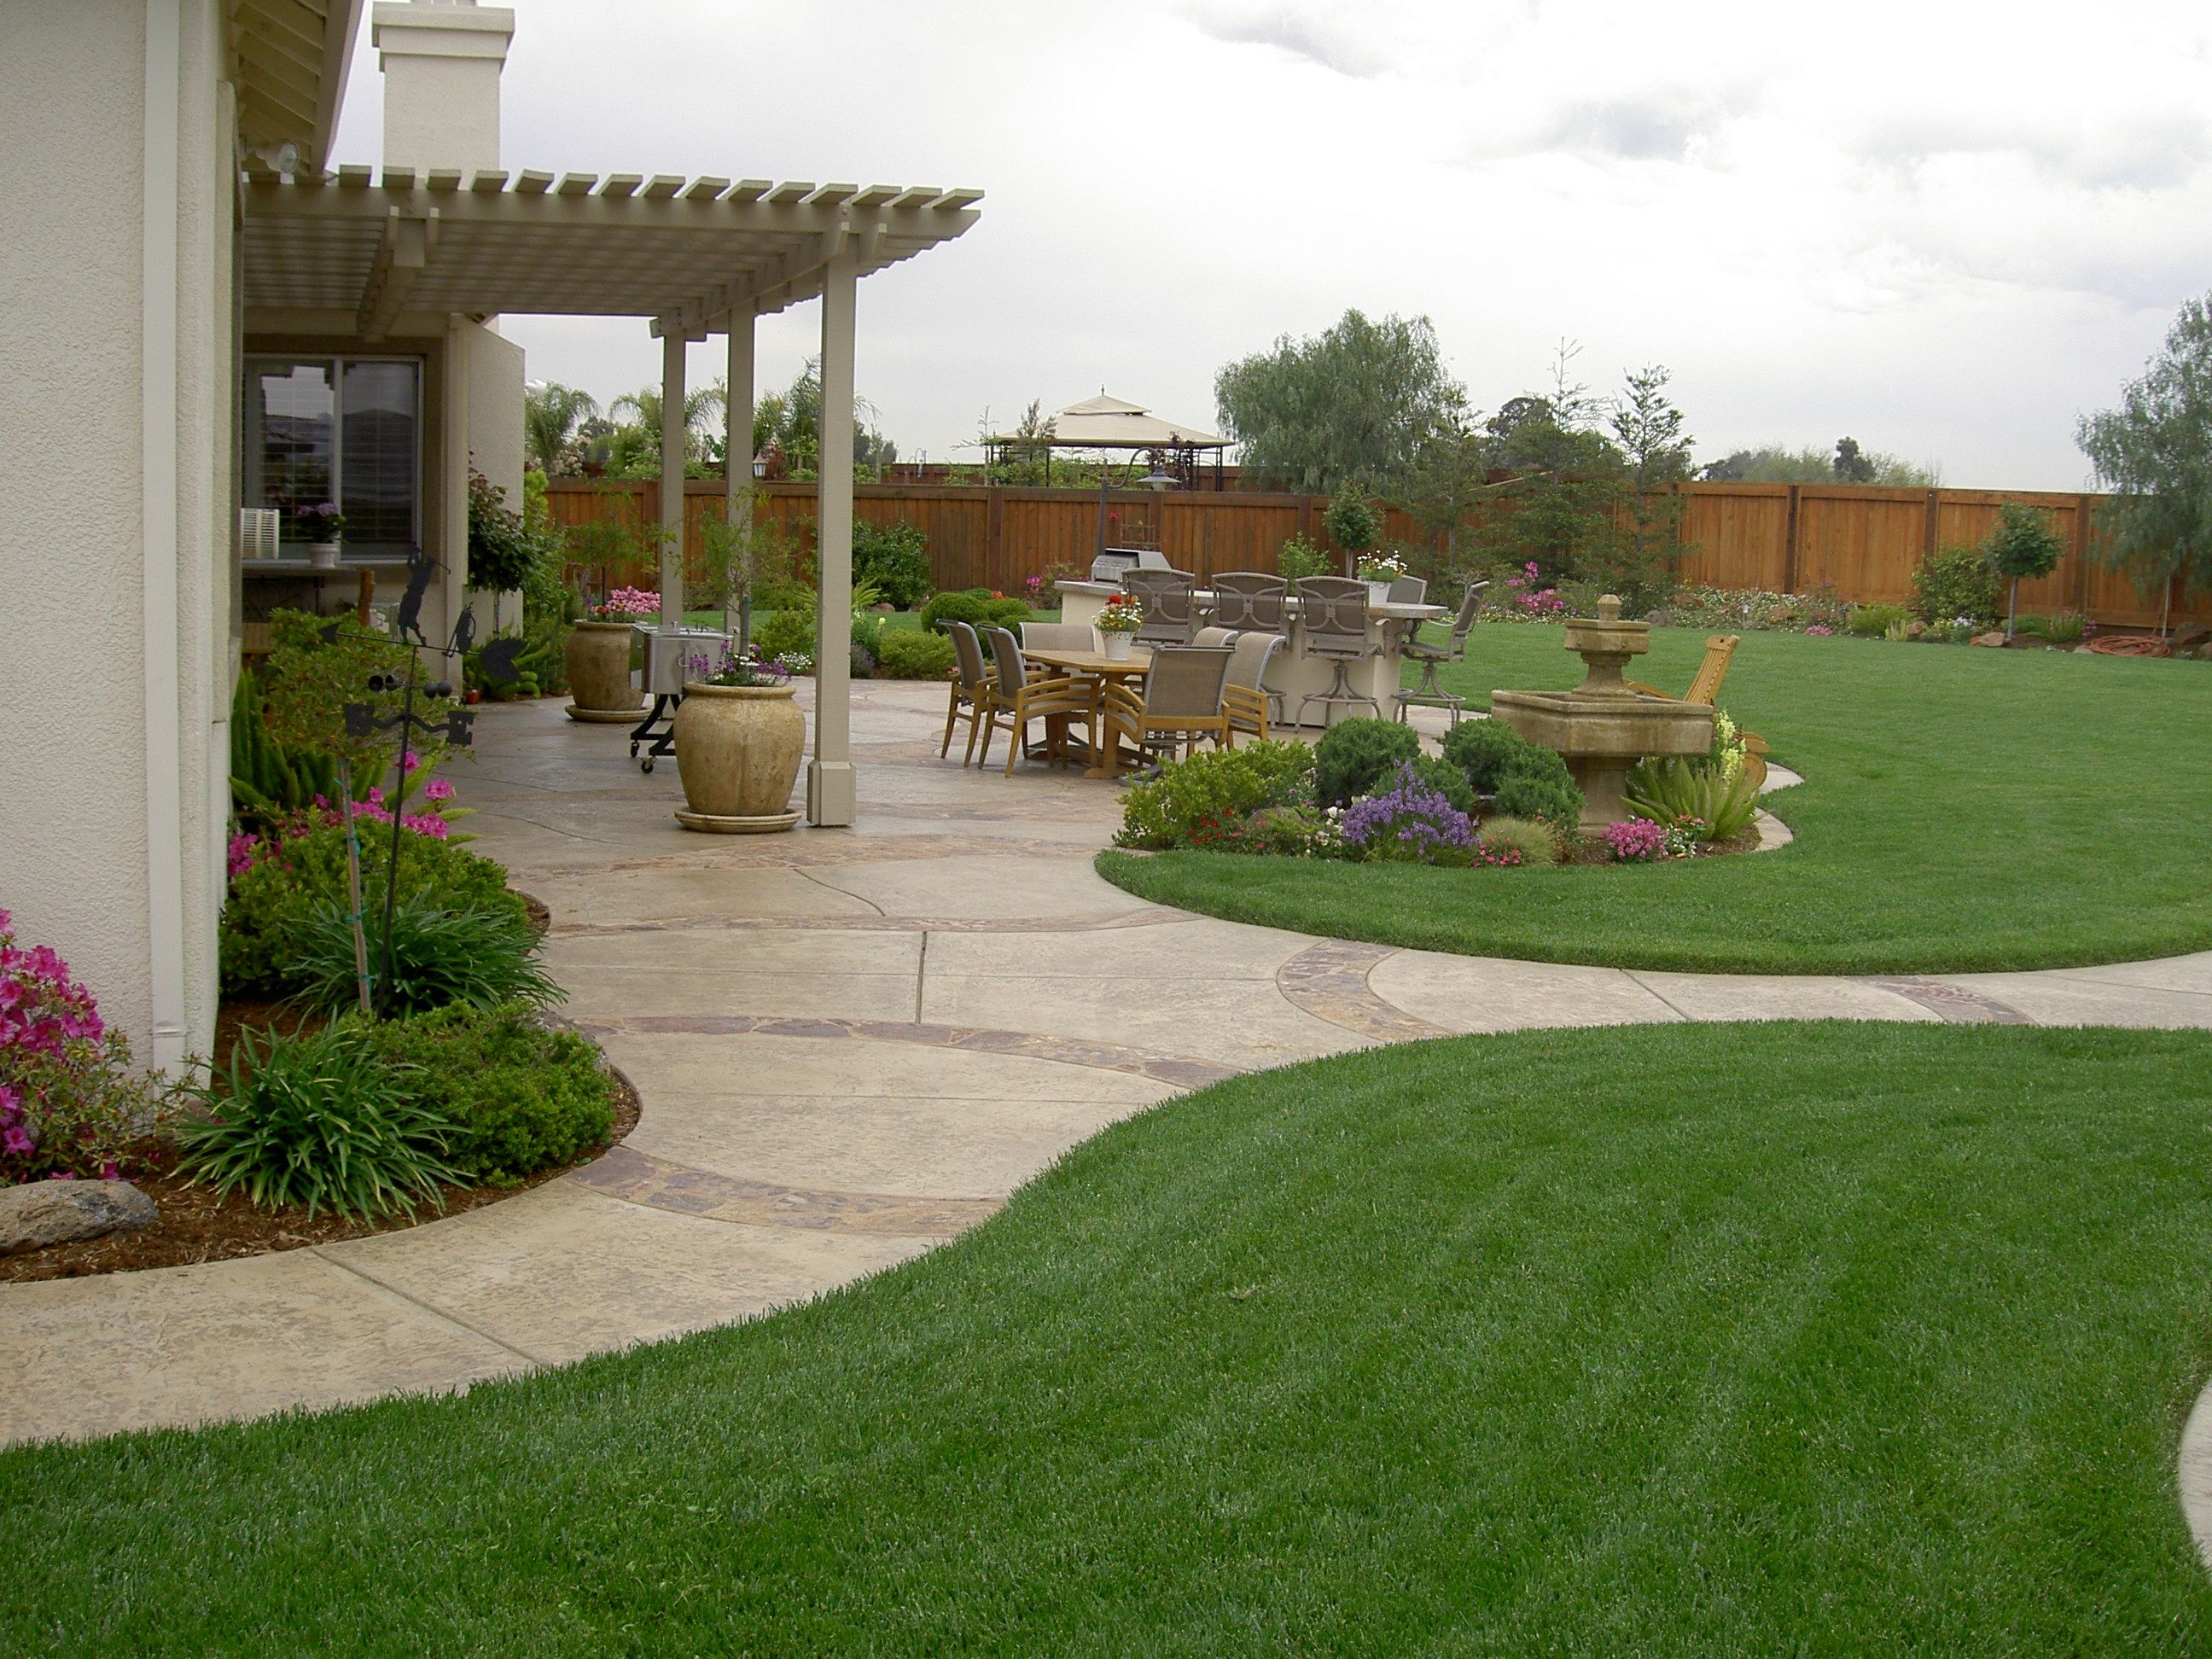 20 Awesome Landscaping Ideas For Your Backyard Gardensoutdoor in Big Backyard Ideas